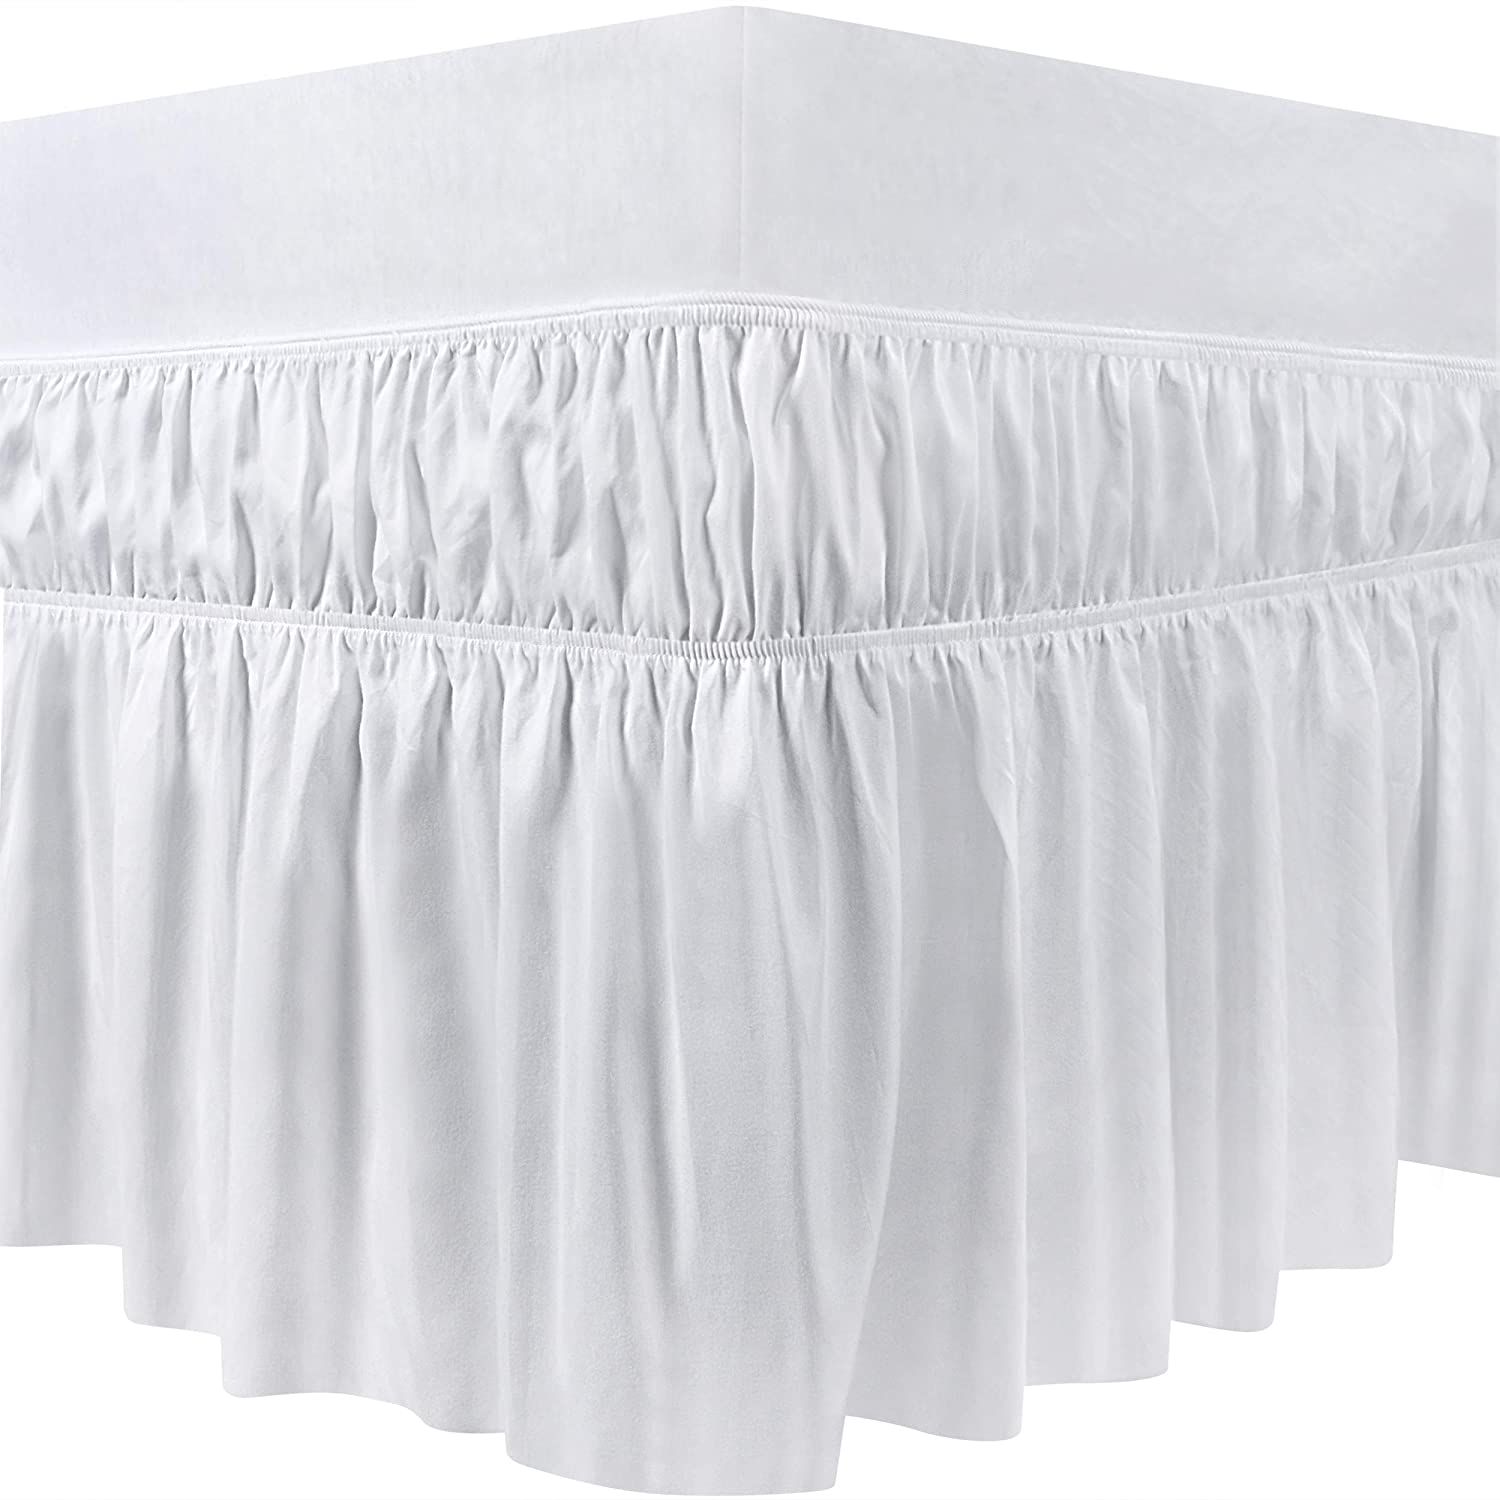 Utopia Bedding Queen Elastic Bed Ruffle Skirt (White)